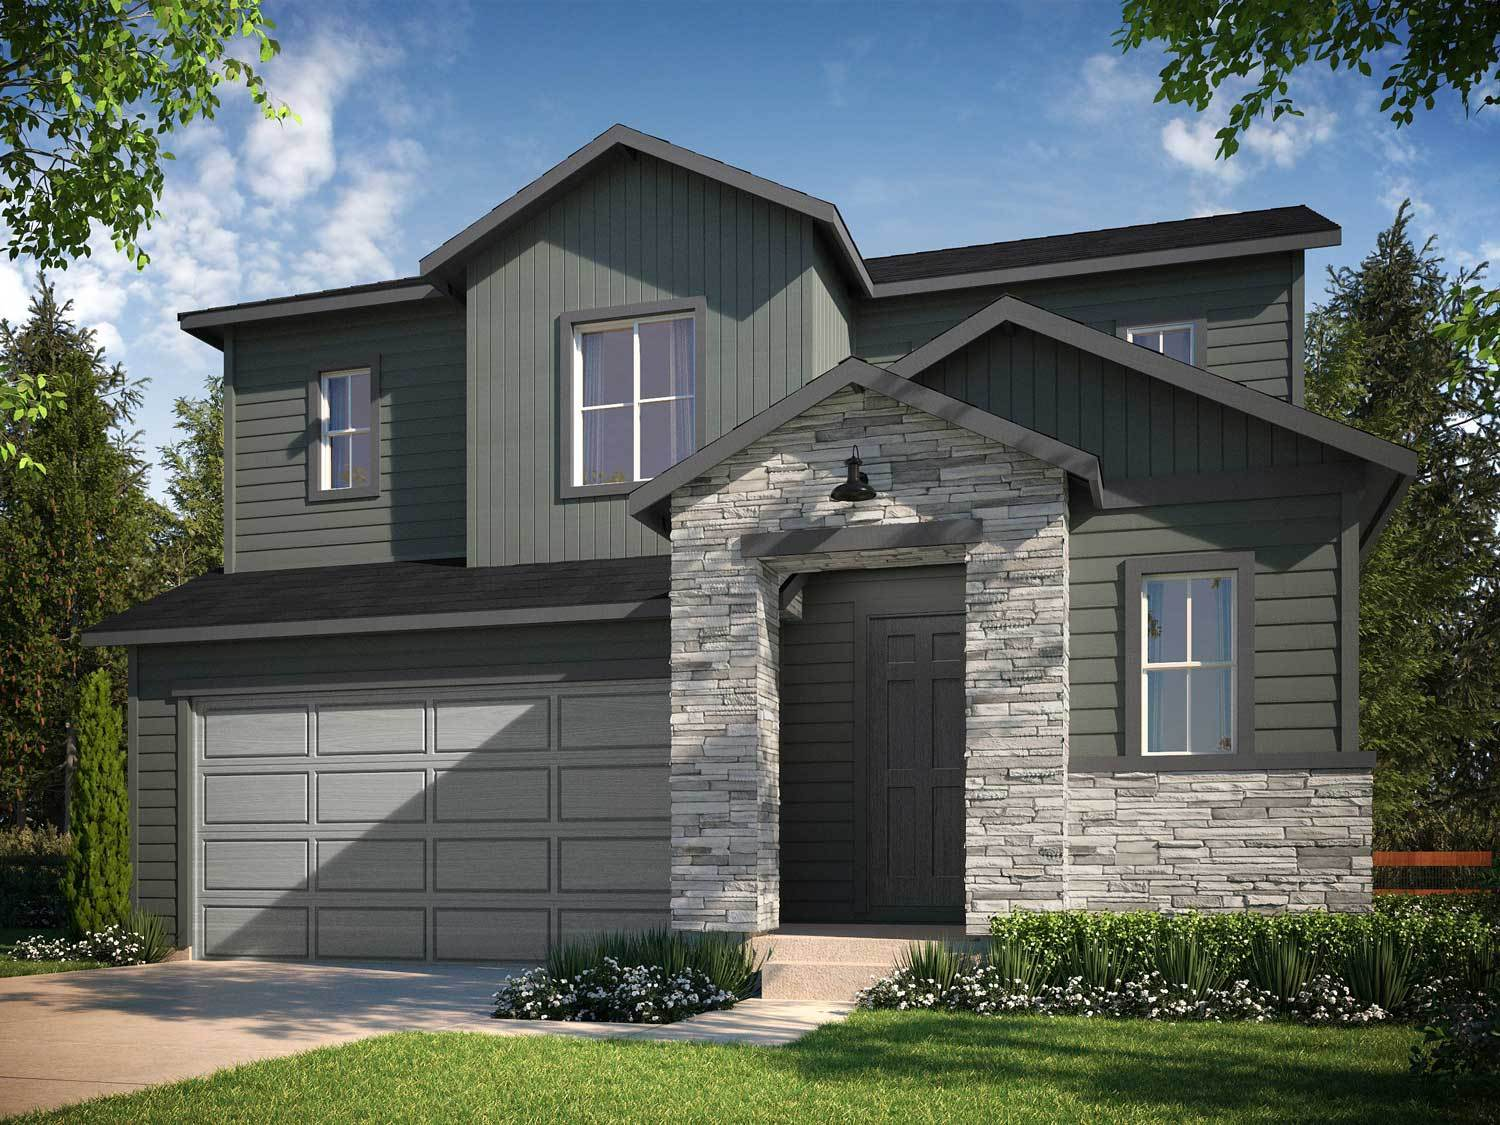 Tri pointe homes terrain prelude collection in ravenwood for Ravenwood homes